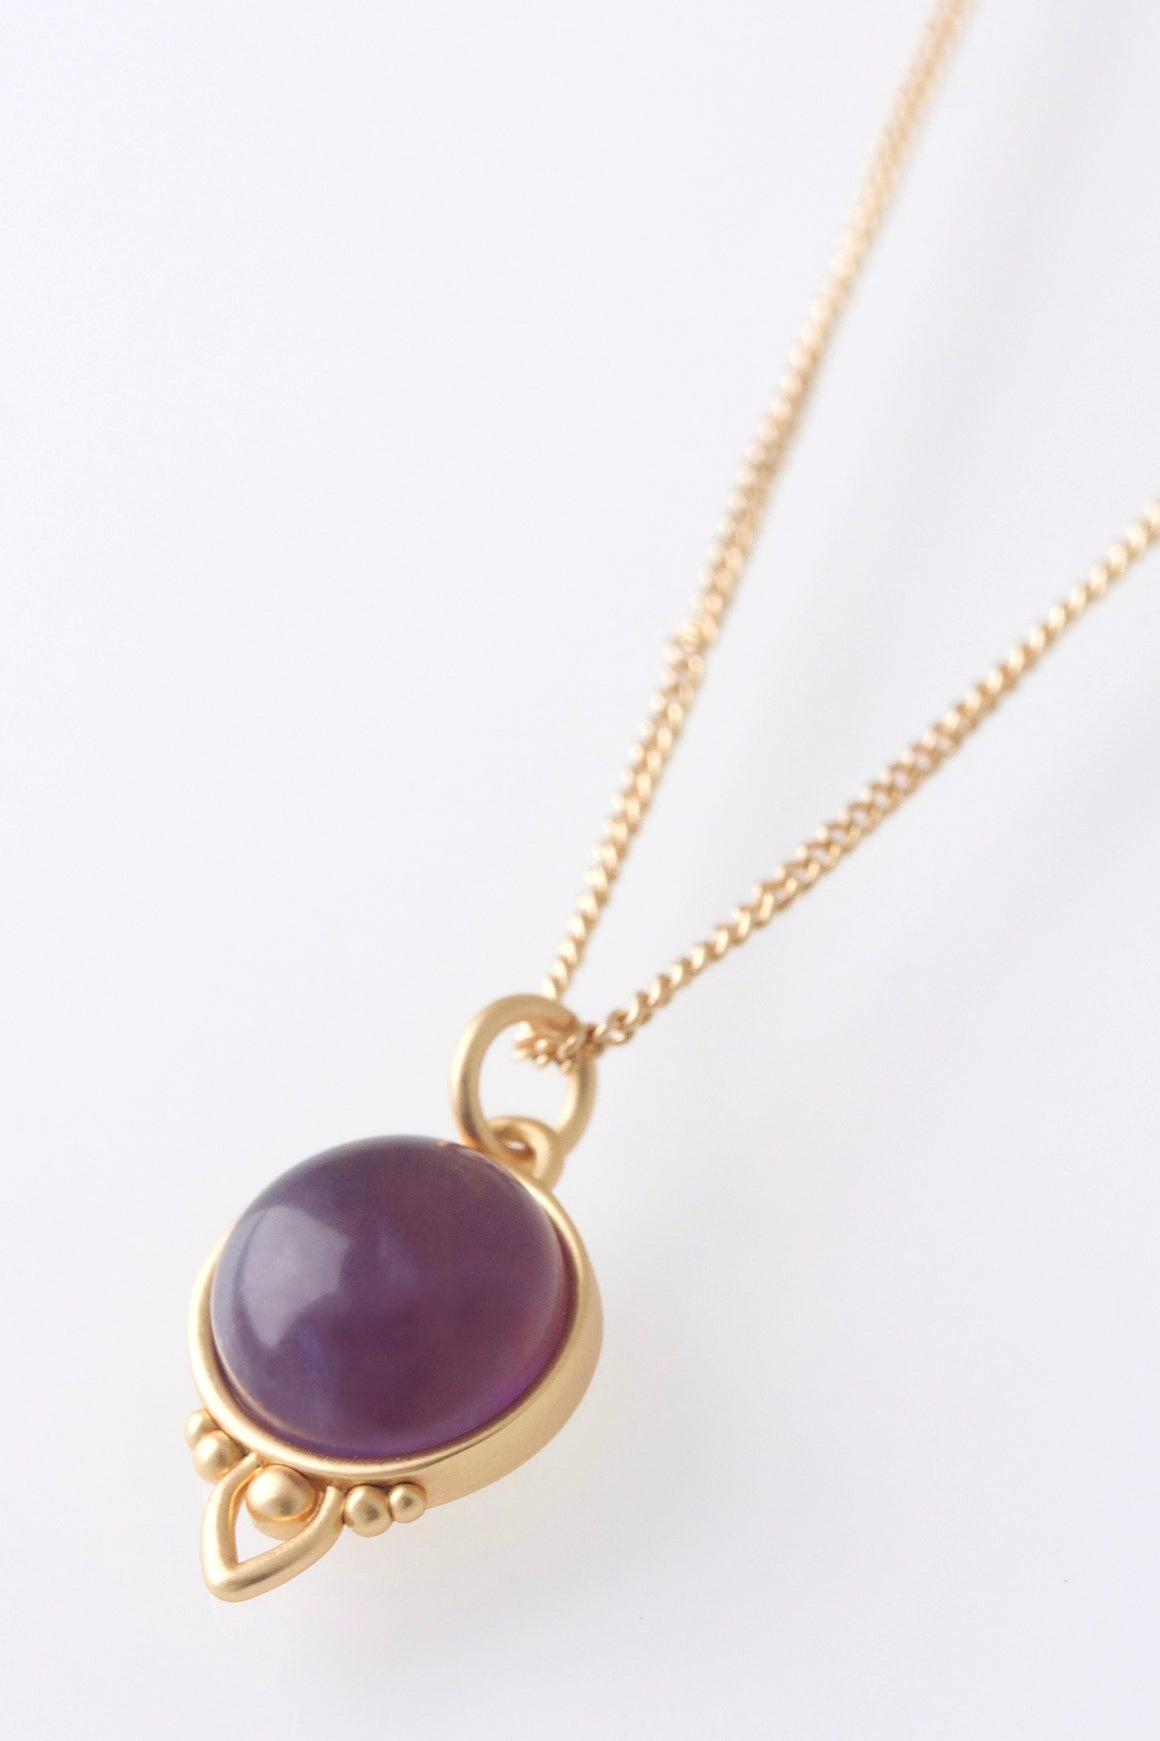 Gold Healing Gemstone Necklace - Amethyst